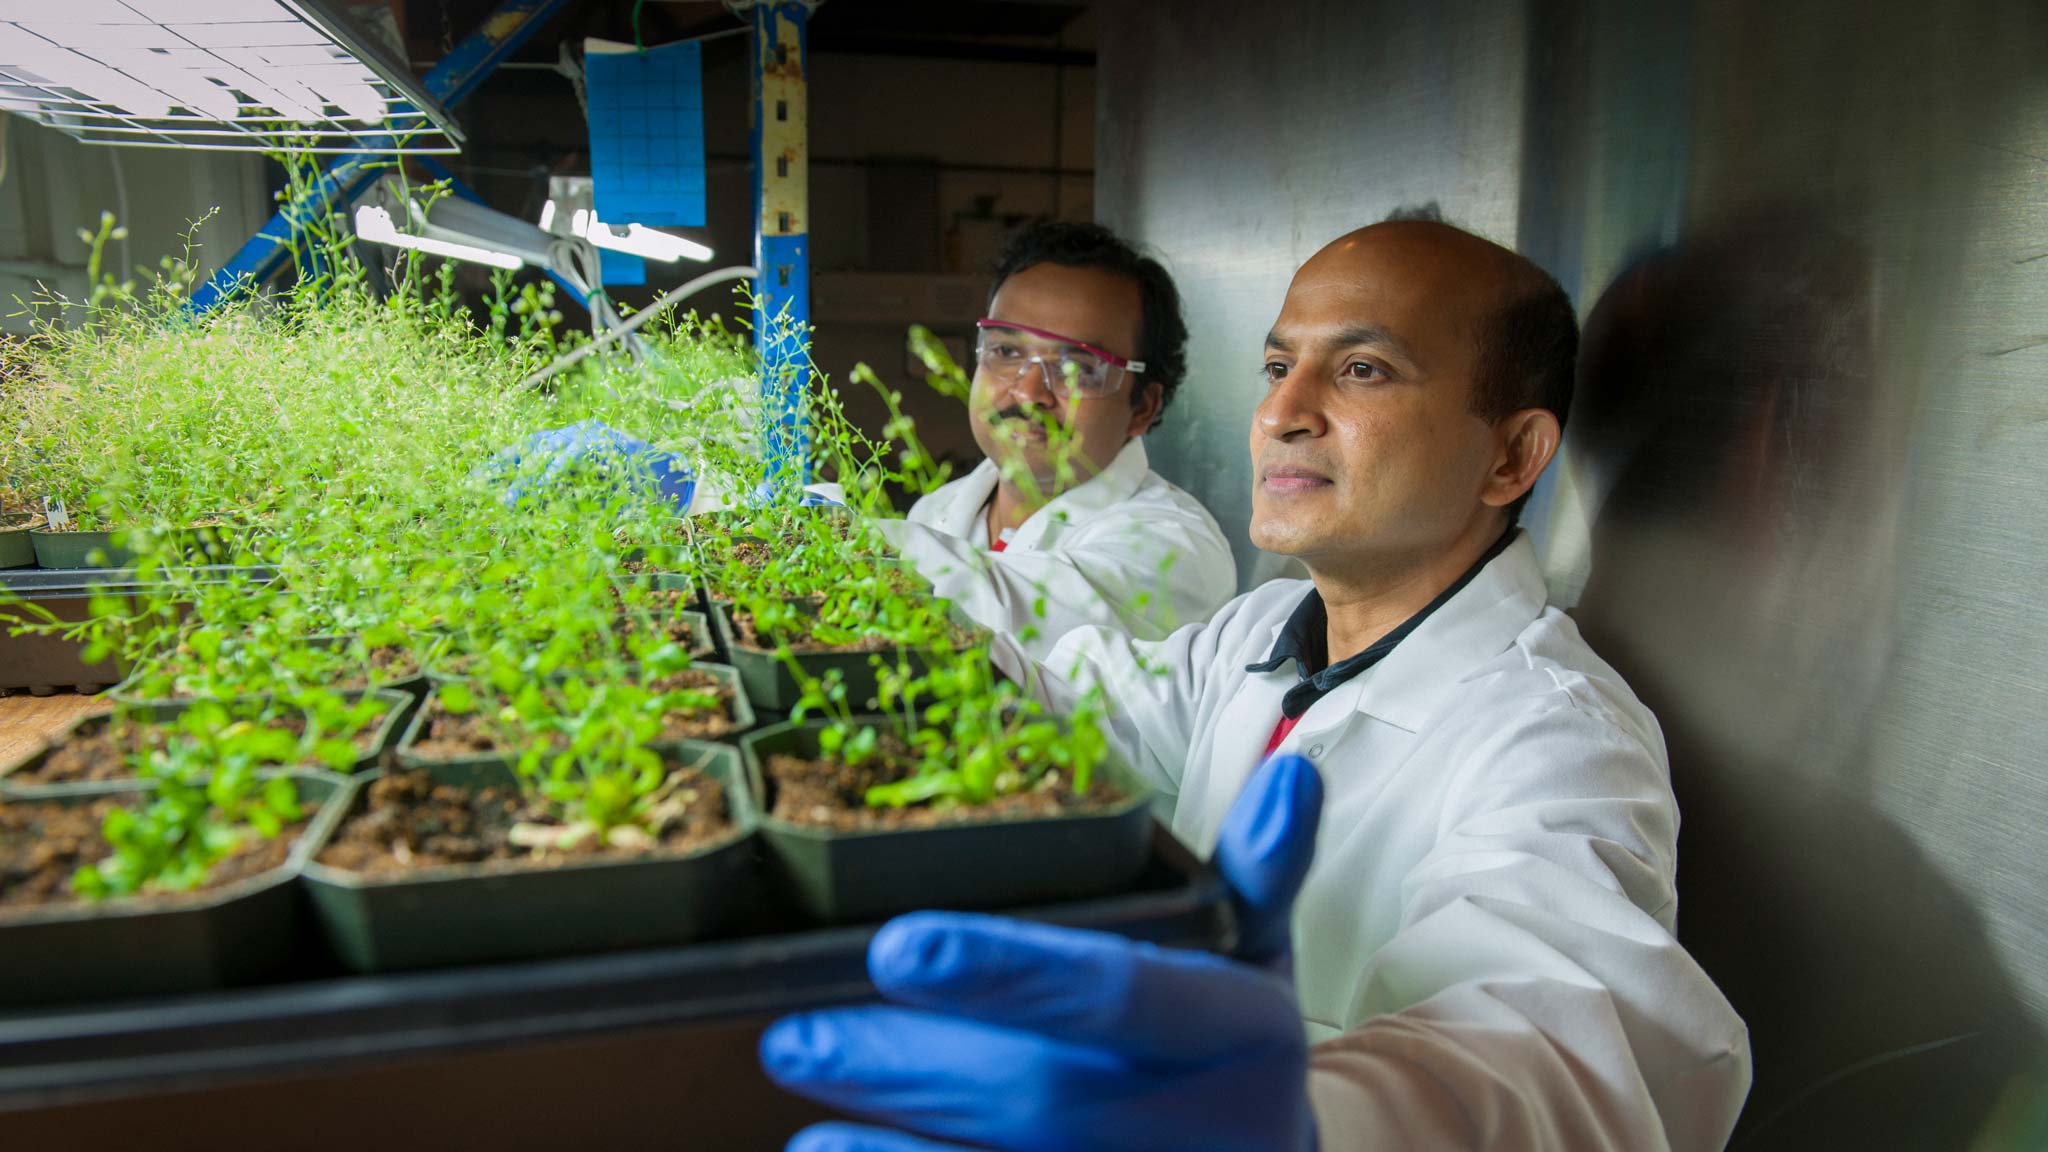 Venugopal Mendu adjusts a tray of plant specimens in his research lab